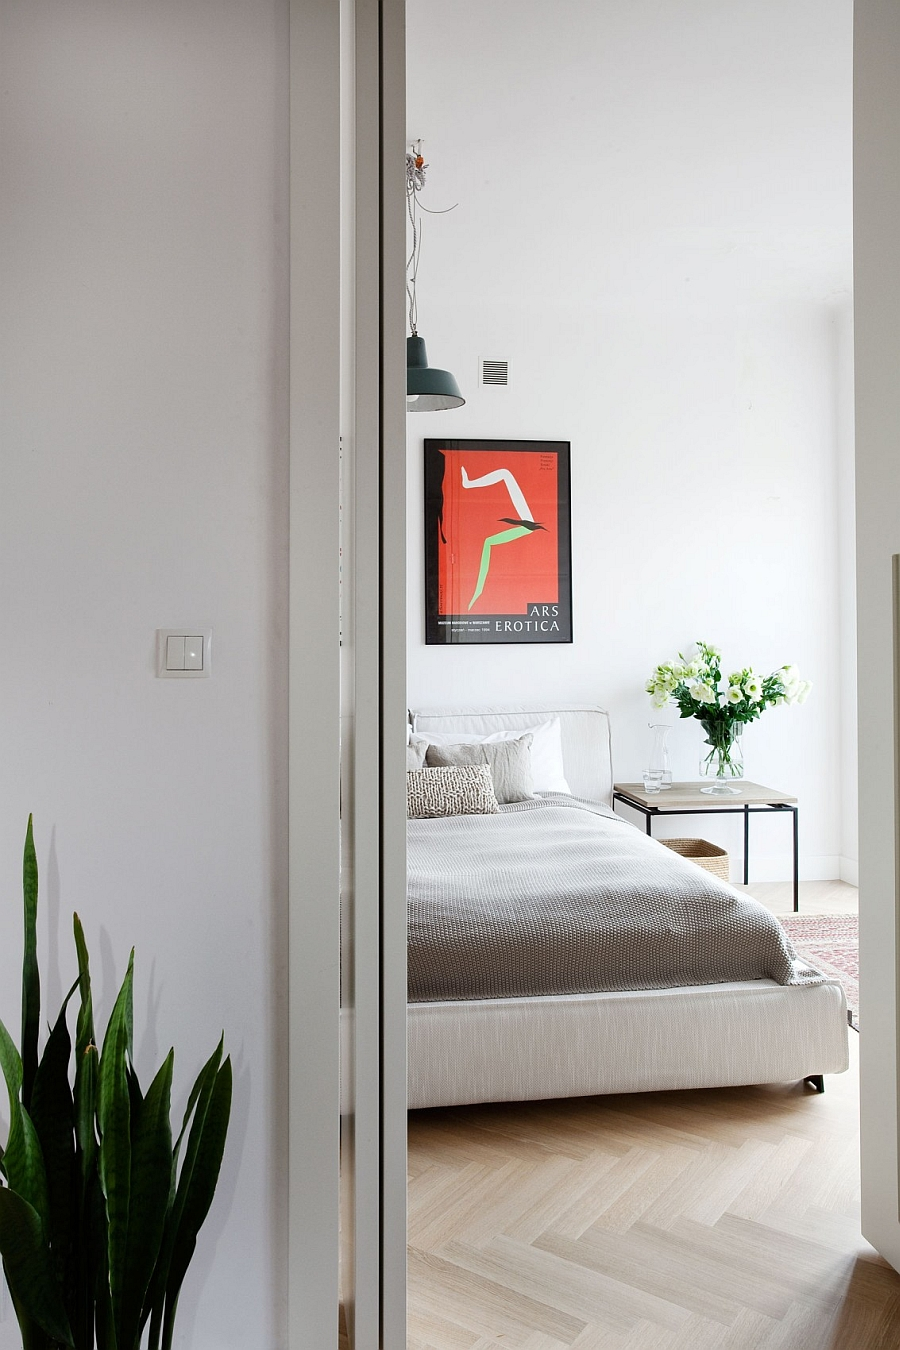 Cast a Glance on the Side Table and Natural Flowers Enhancing the Bedroom`s Serenity